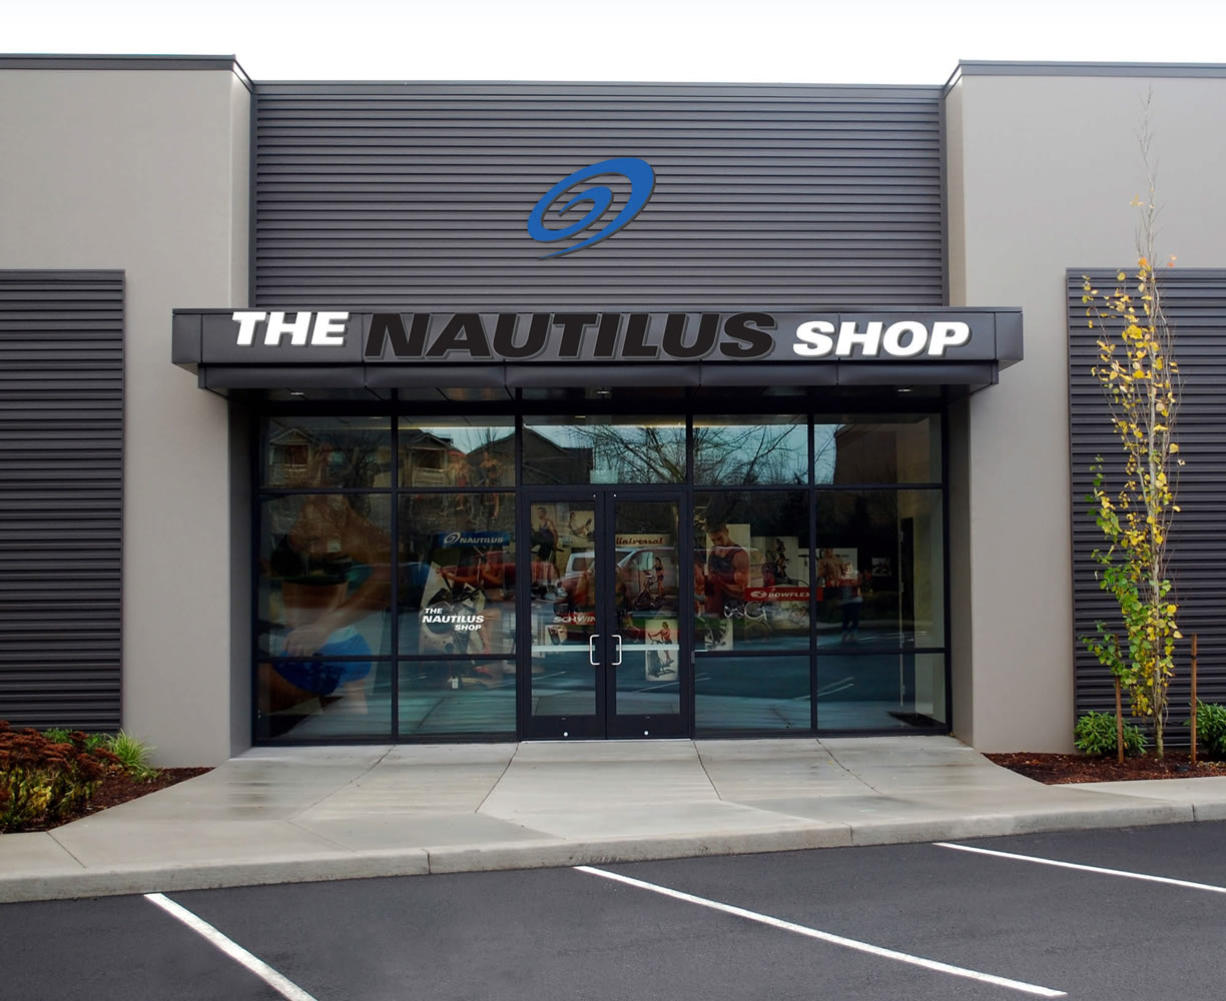 The Nautilus Shop, 17711 S.E. Sixth Ave., is across the street from the company's headquarters.